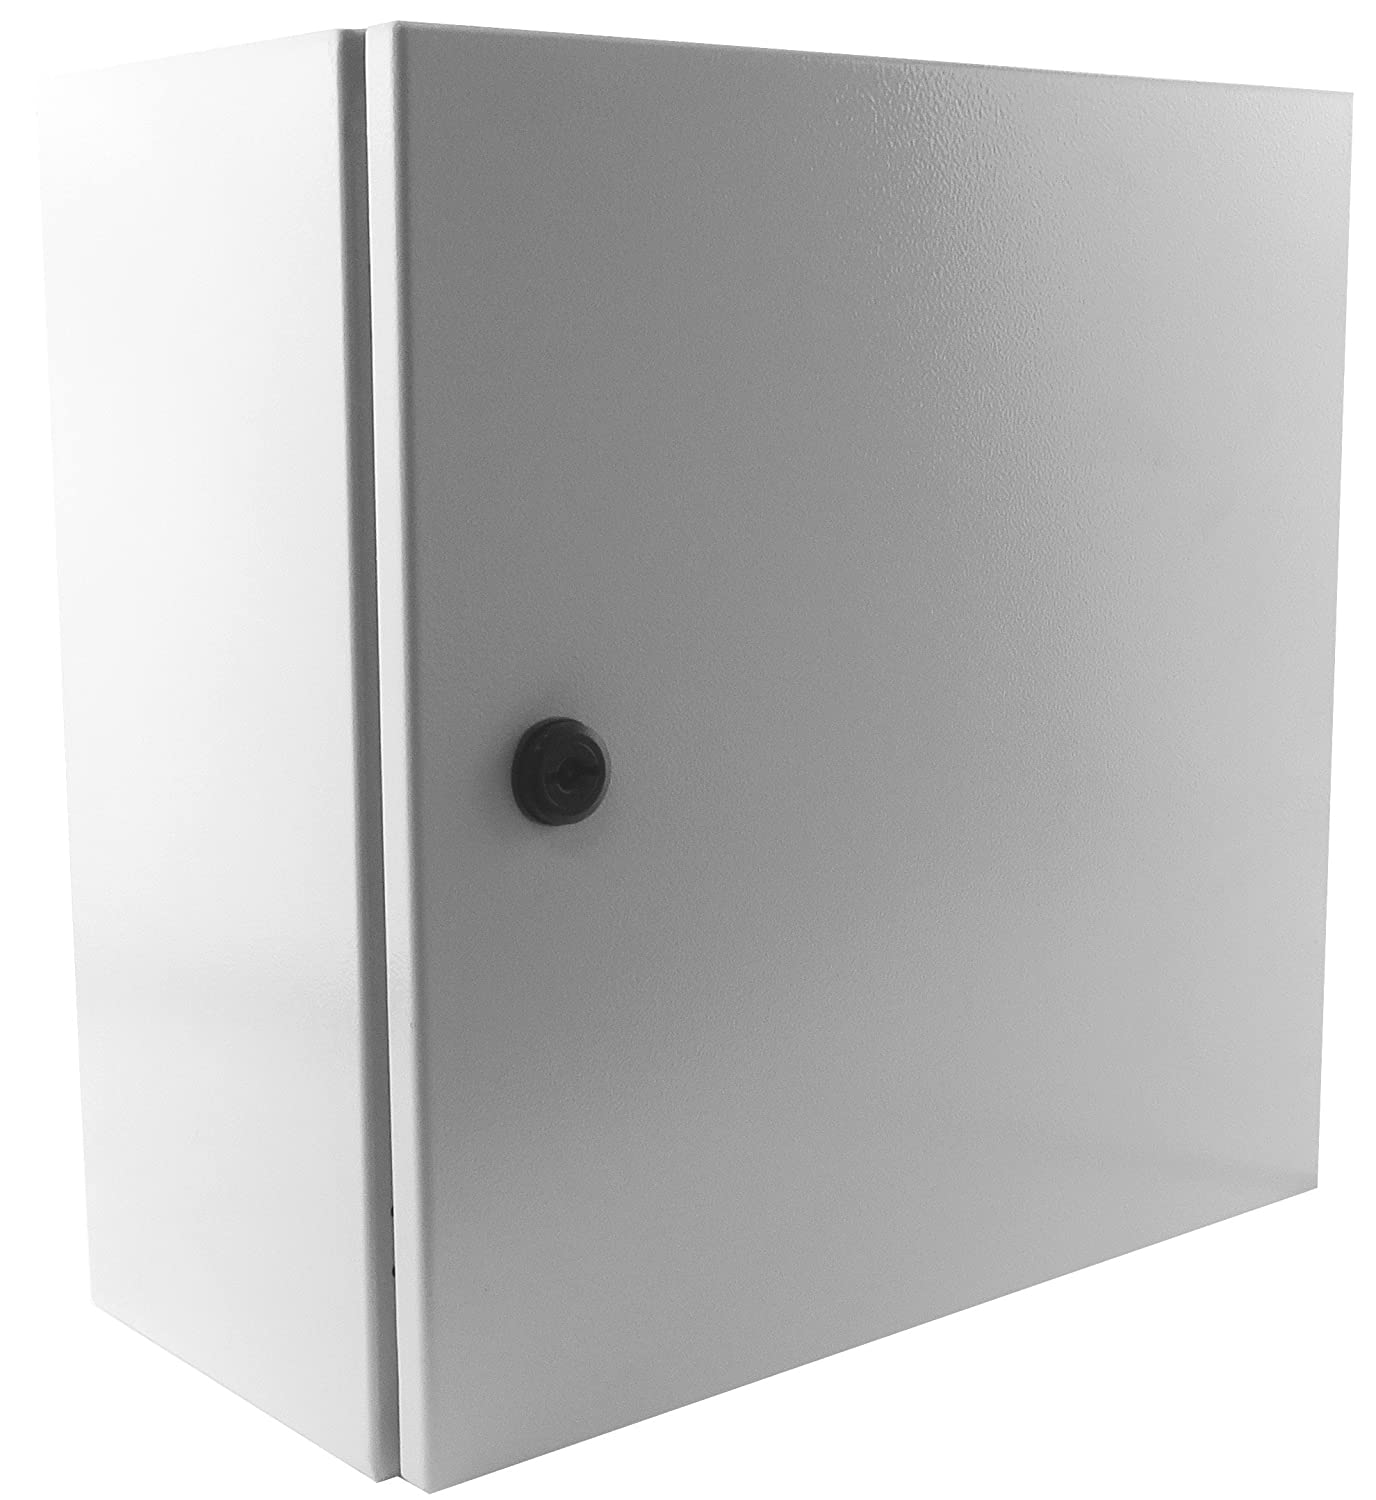 YuCo YC 16x16x8 UL CERTIFIED 16 16 8 TYPE NEMA 4 16 Gauge Wall Mount Standard Indoor Outdoor Enclosure 16 H x 16 W x 8 D